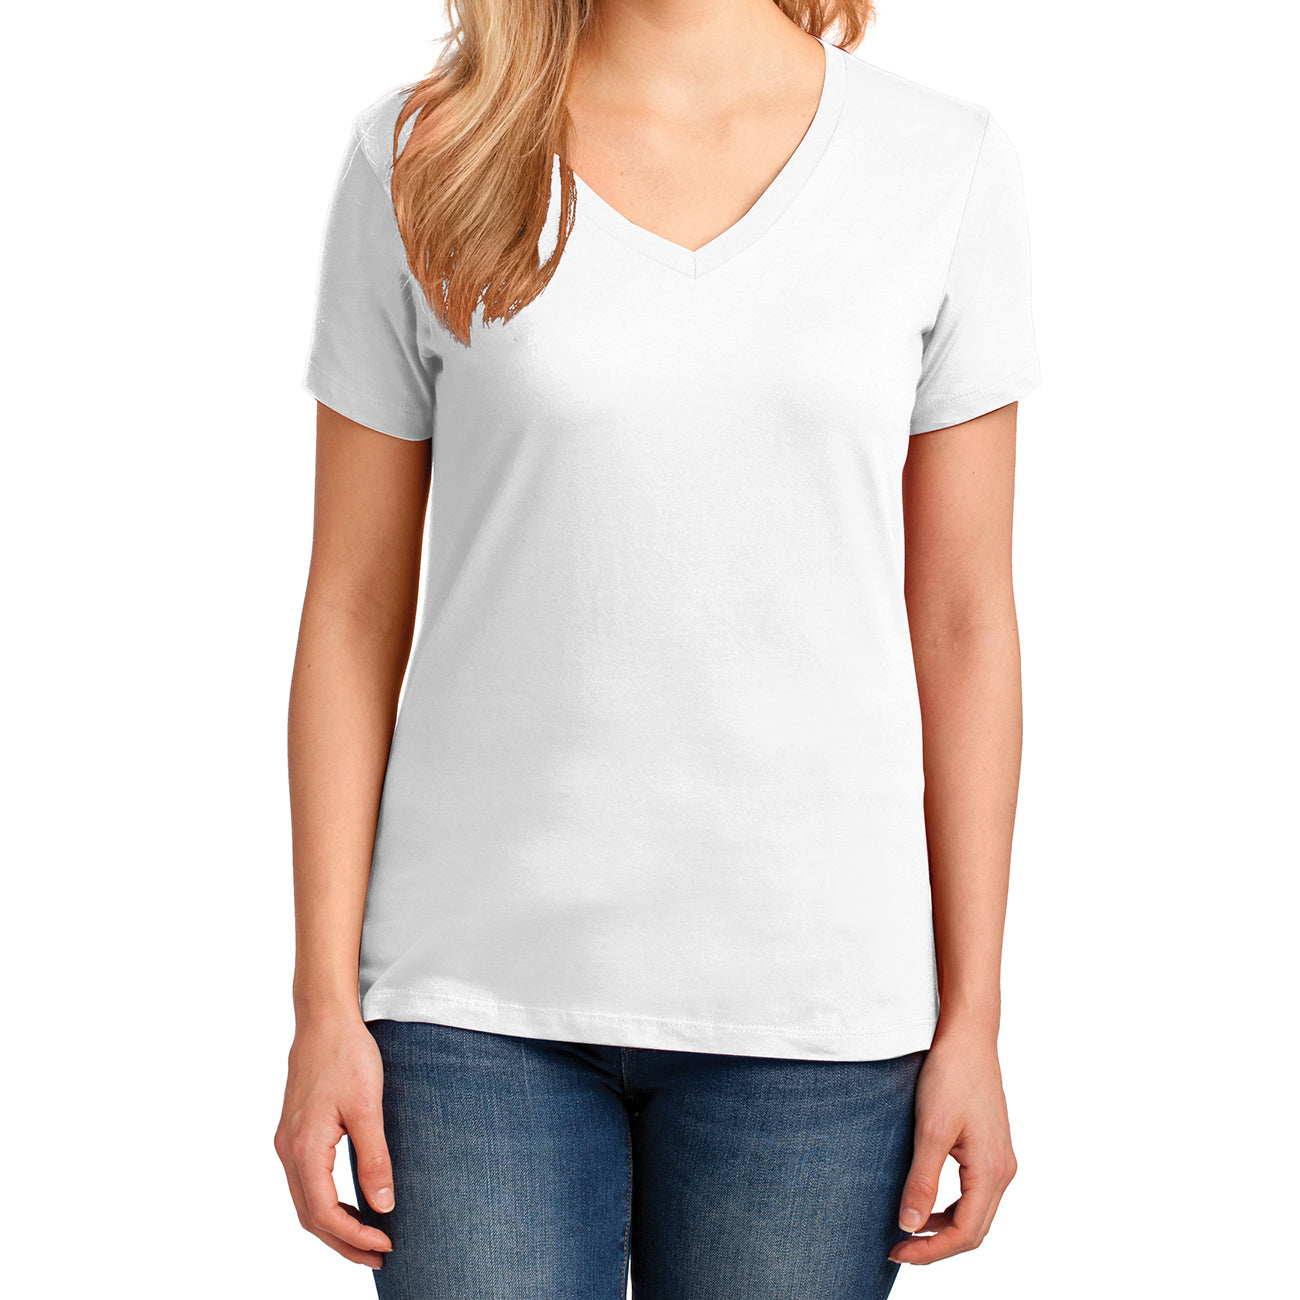 Women's Core Cotton V-Neck Tee - White - Front